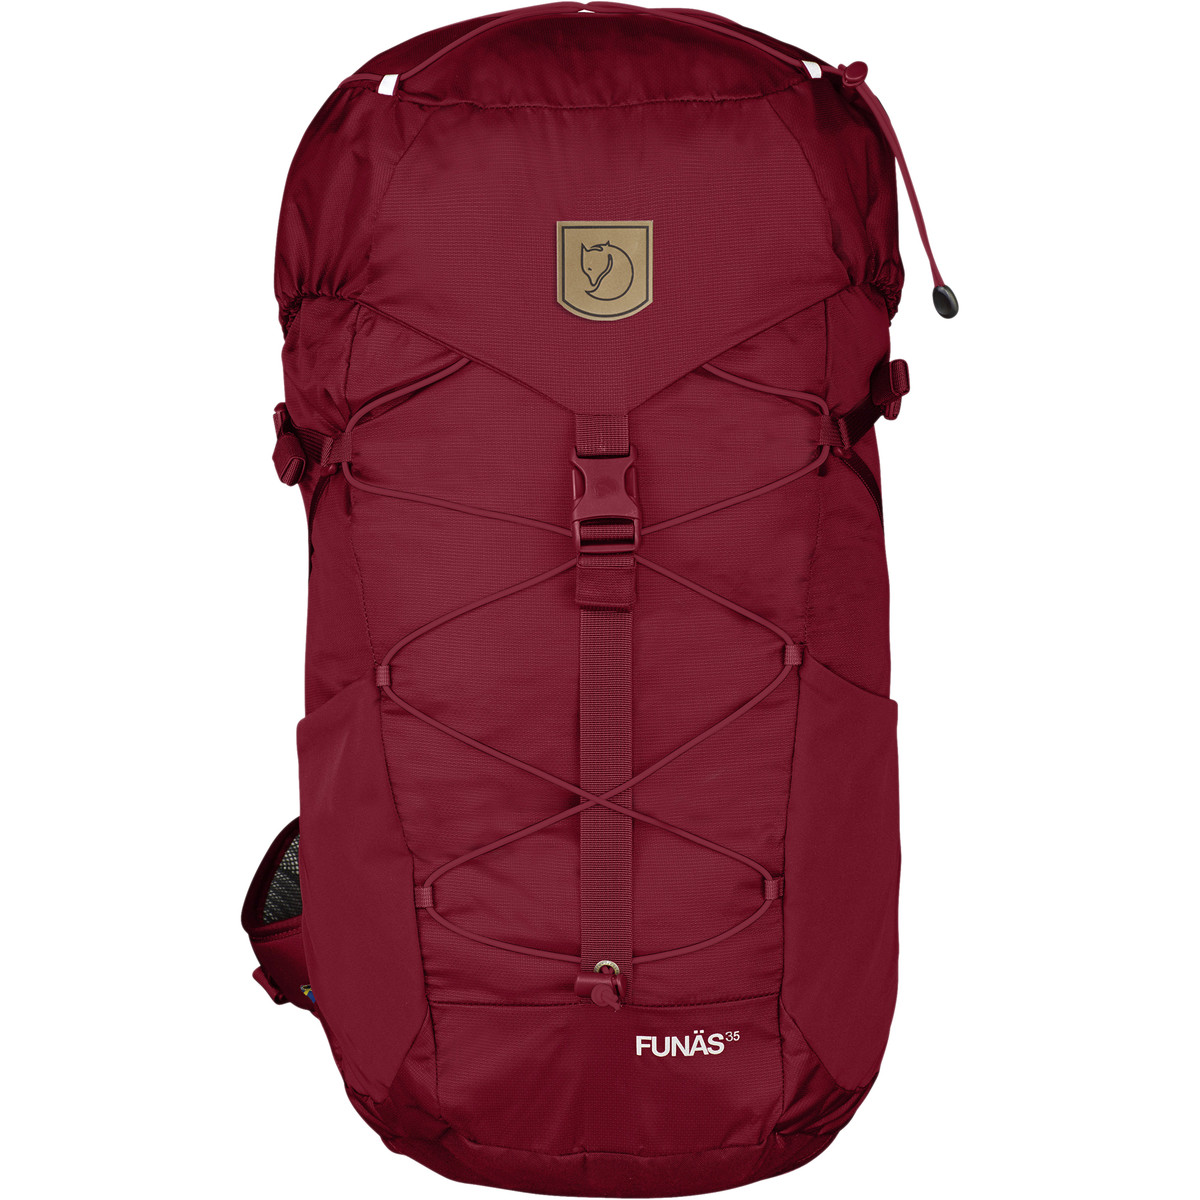 photo: Fjallraven Funas 35 overnight pack (2,000 - 2,999 cu in)